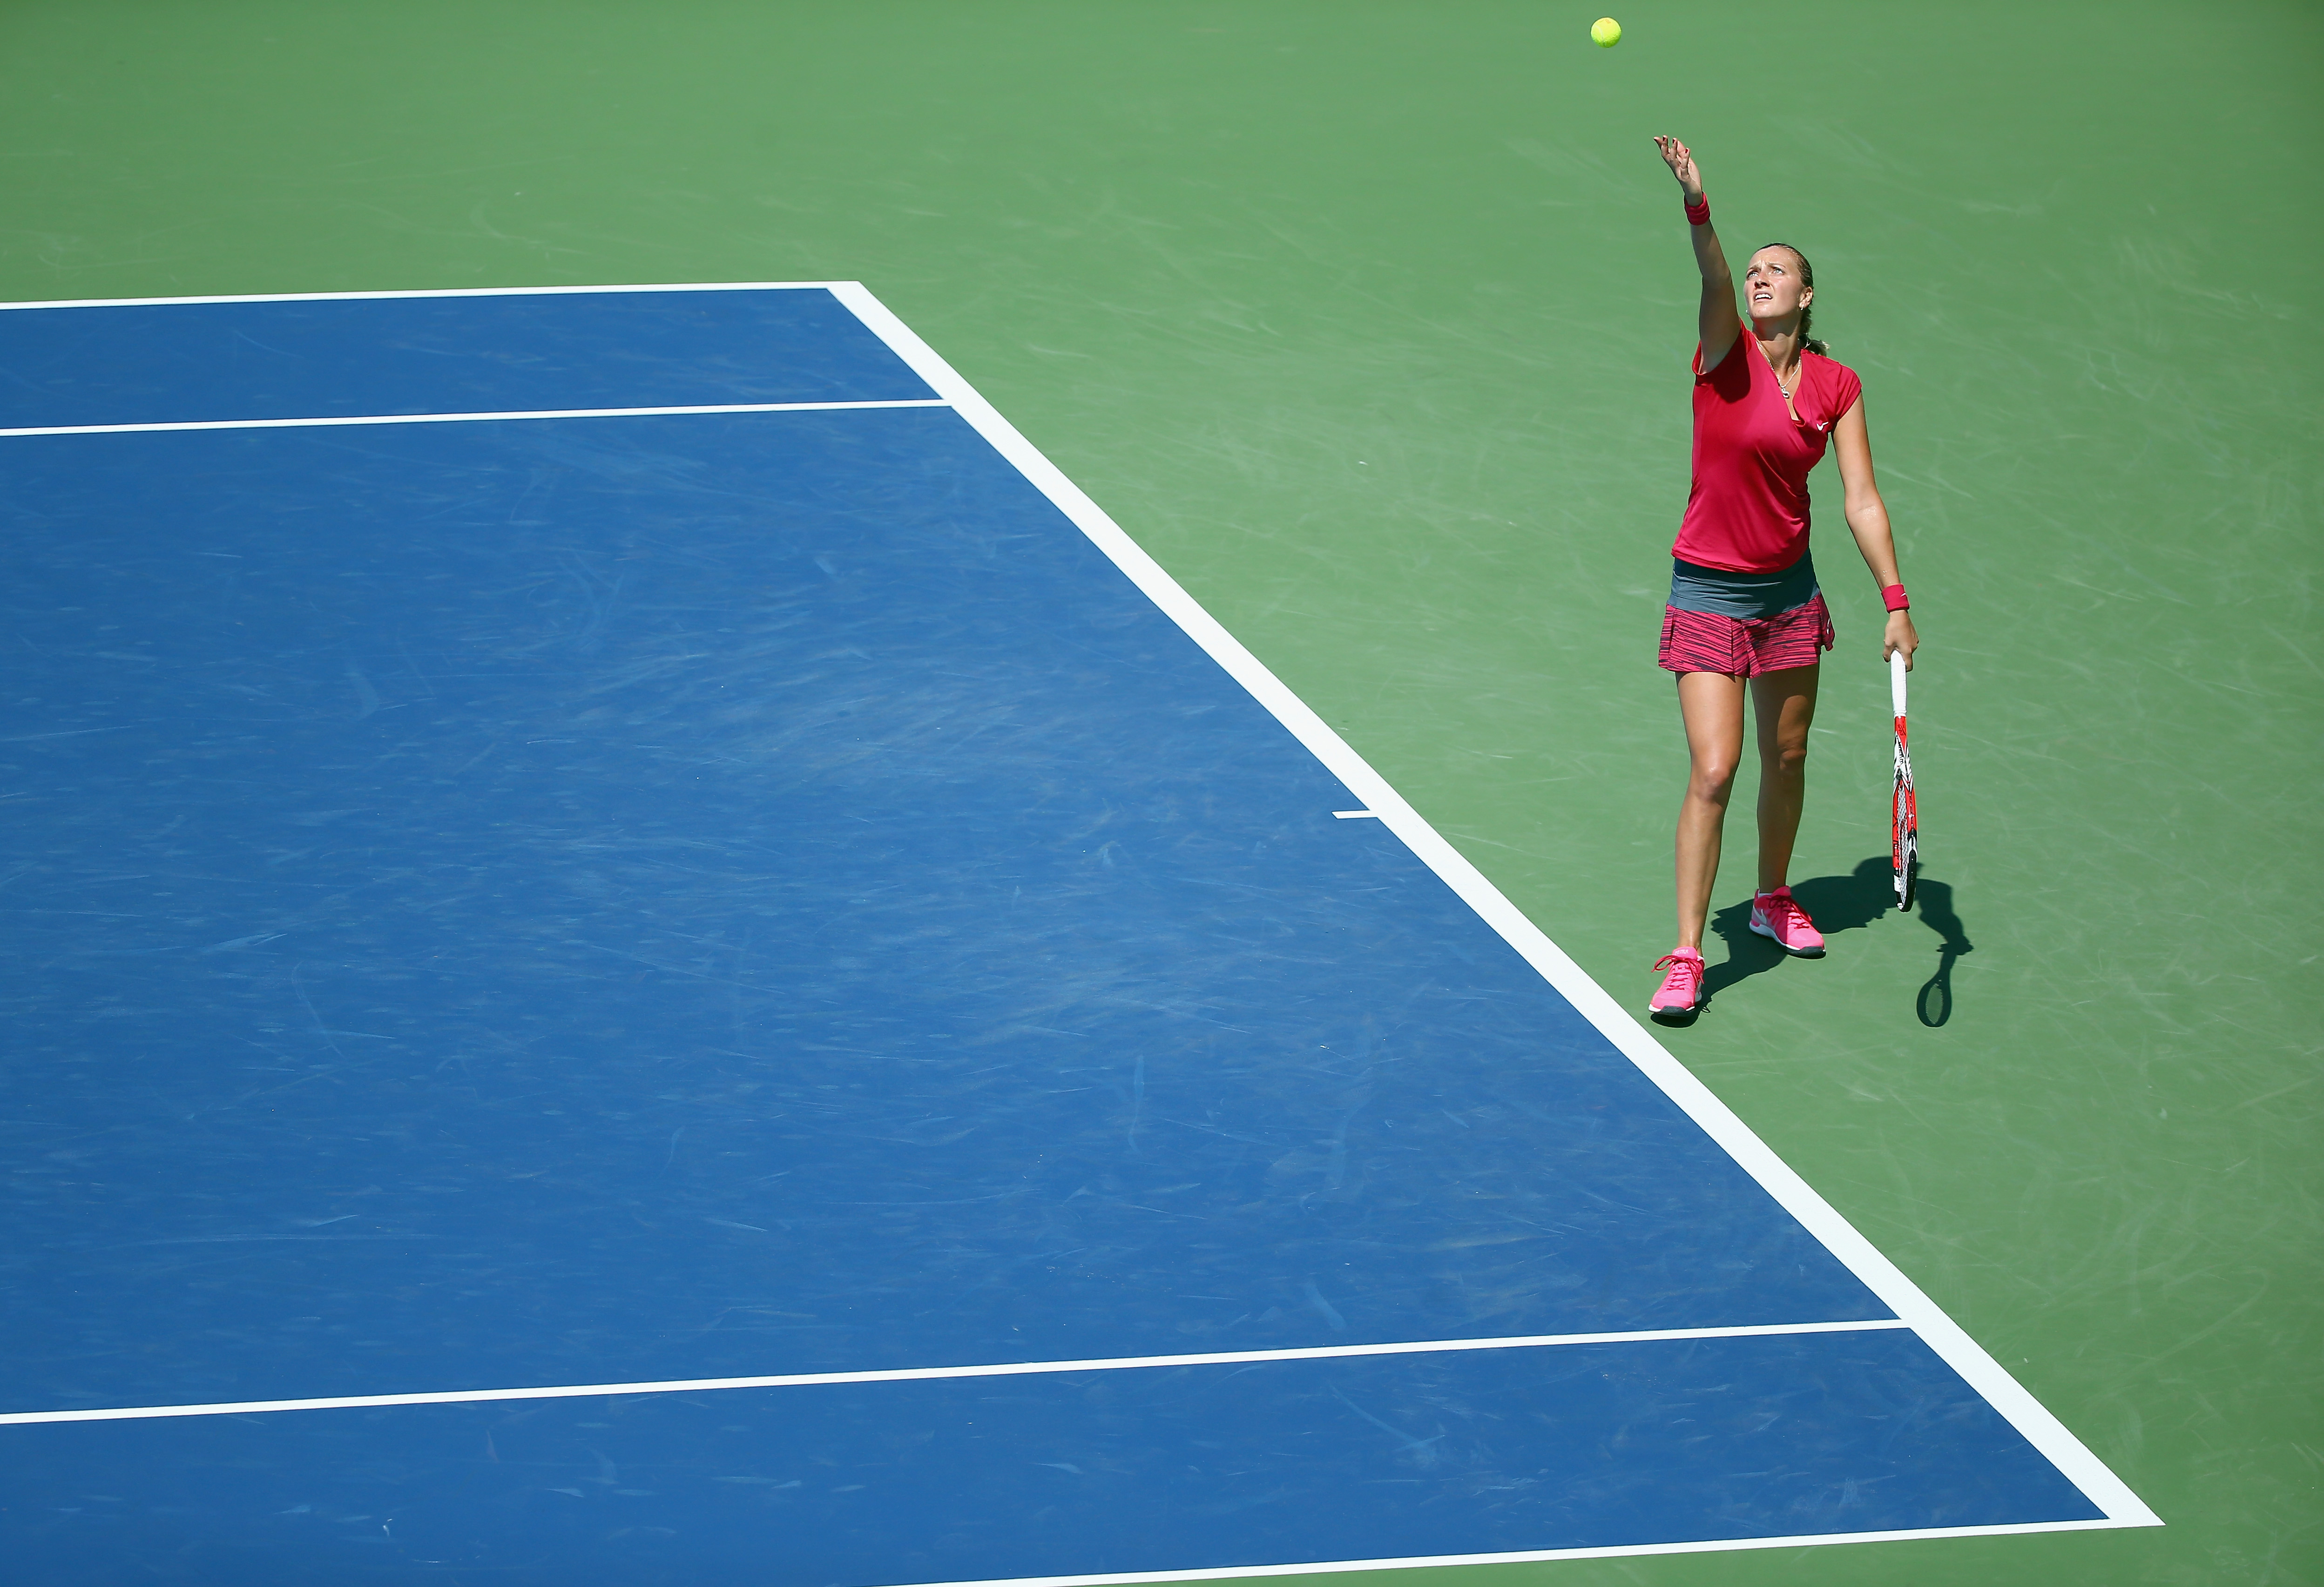 <b>Petra Kvitova</b> In 2008, Kvitova, then a 17-year-old ranked No. 143 in the world, made headlines by upsetting former top-ranked Venus Williams at a tournament in Memphis. She woke her father back in the Czech Republic at 3 a.m. to tell him the good news and describe her first-ever press conference.